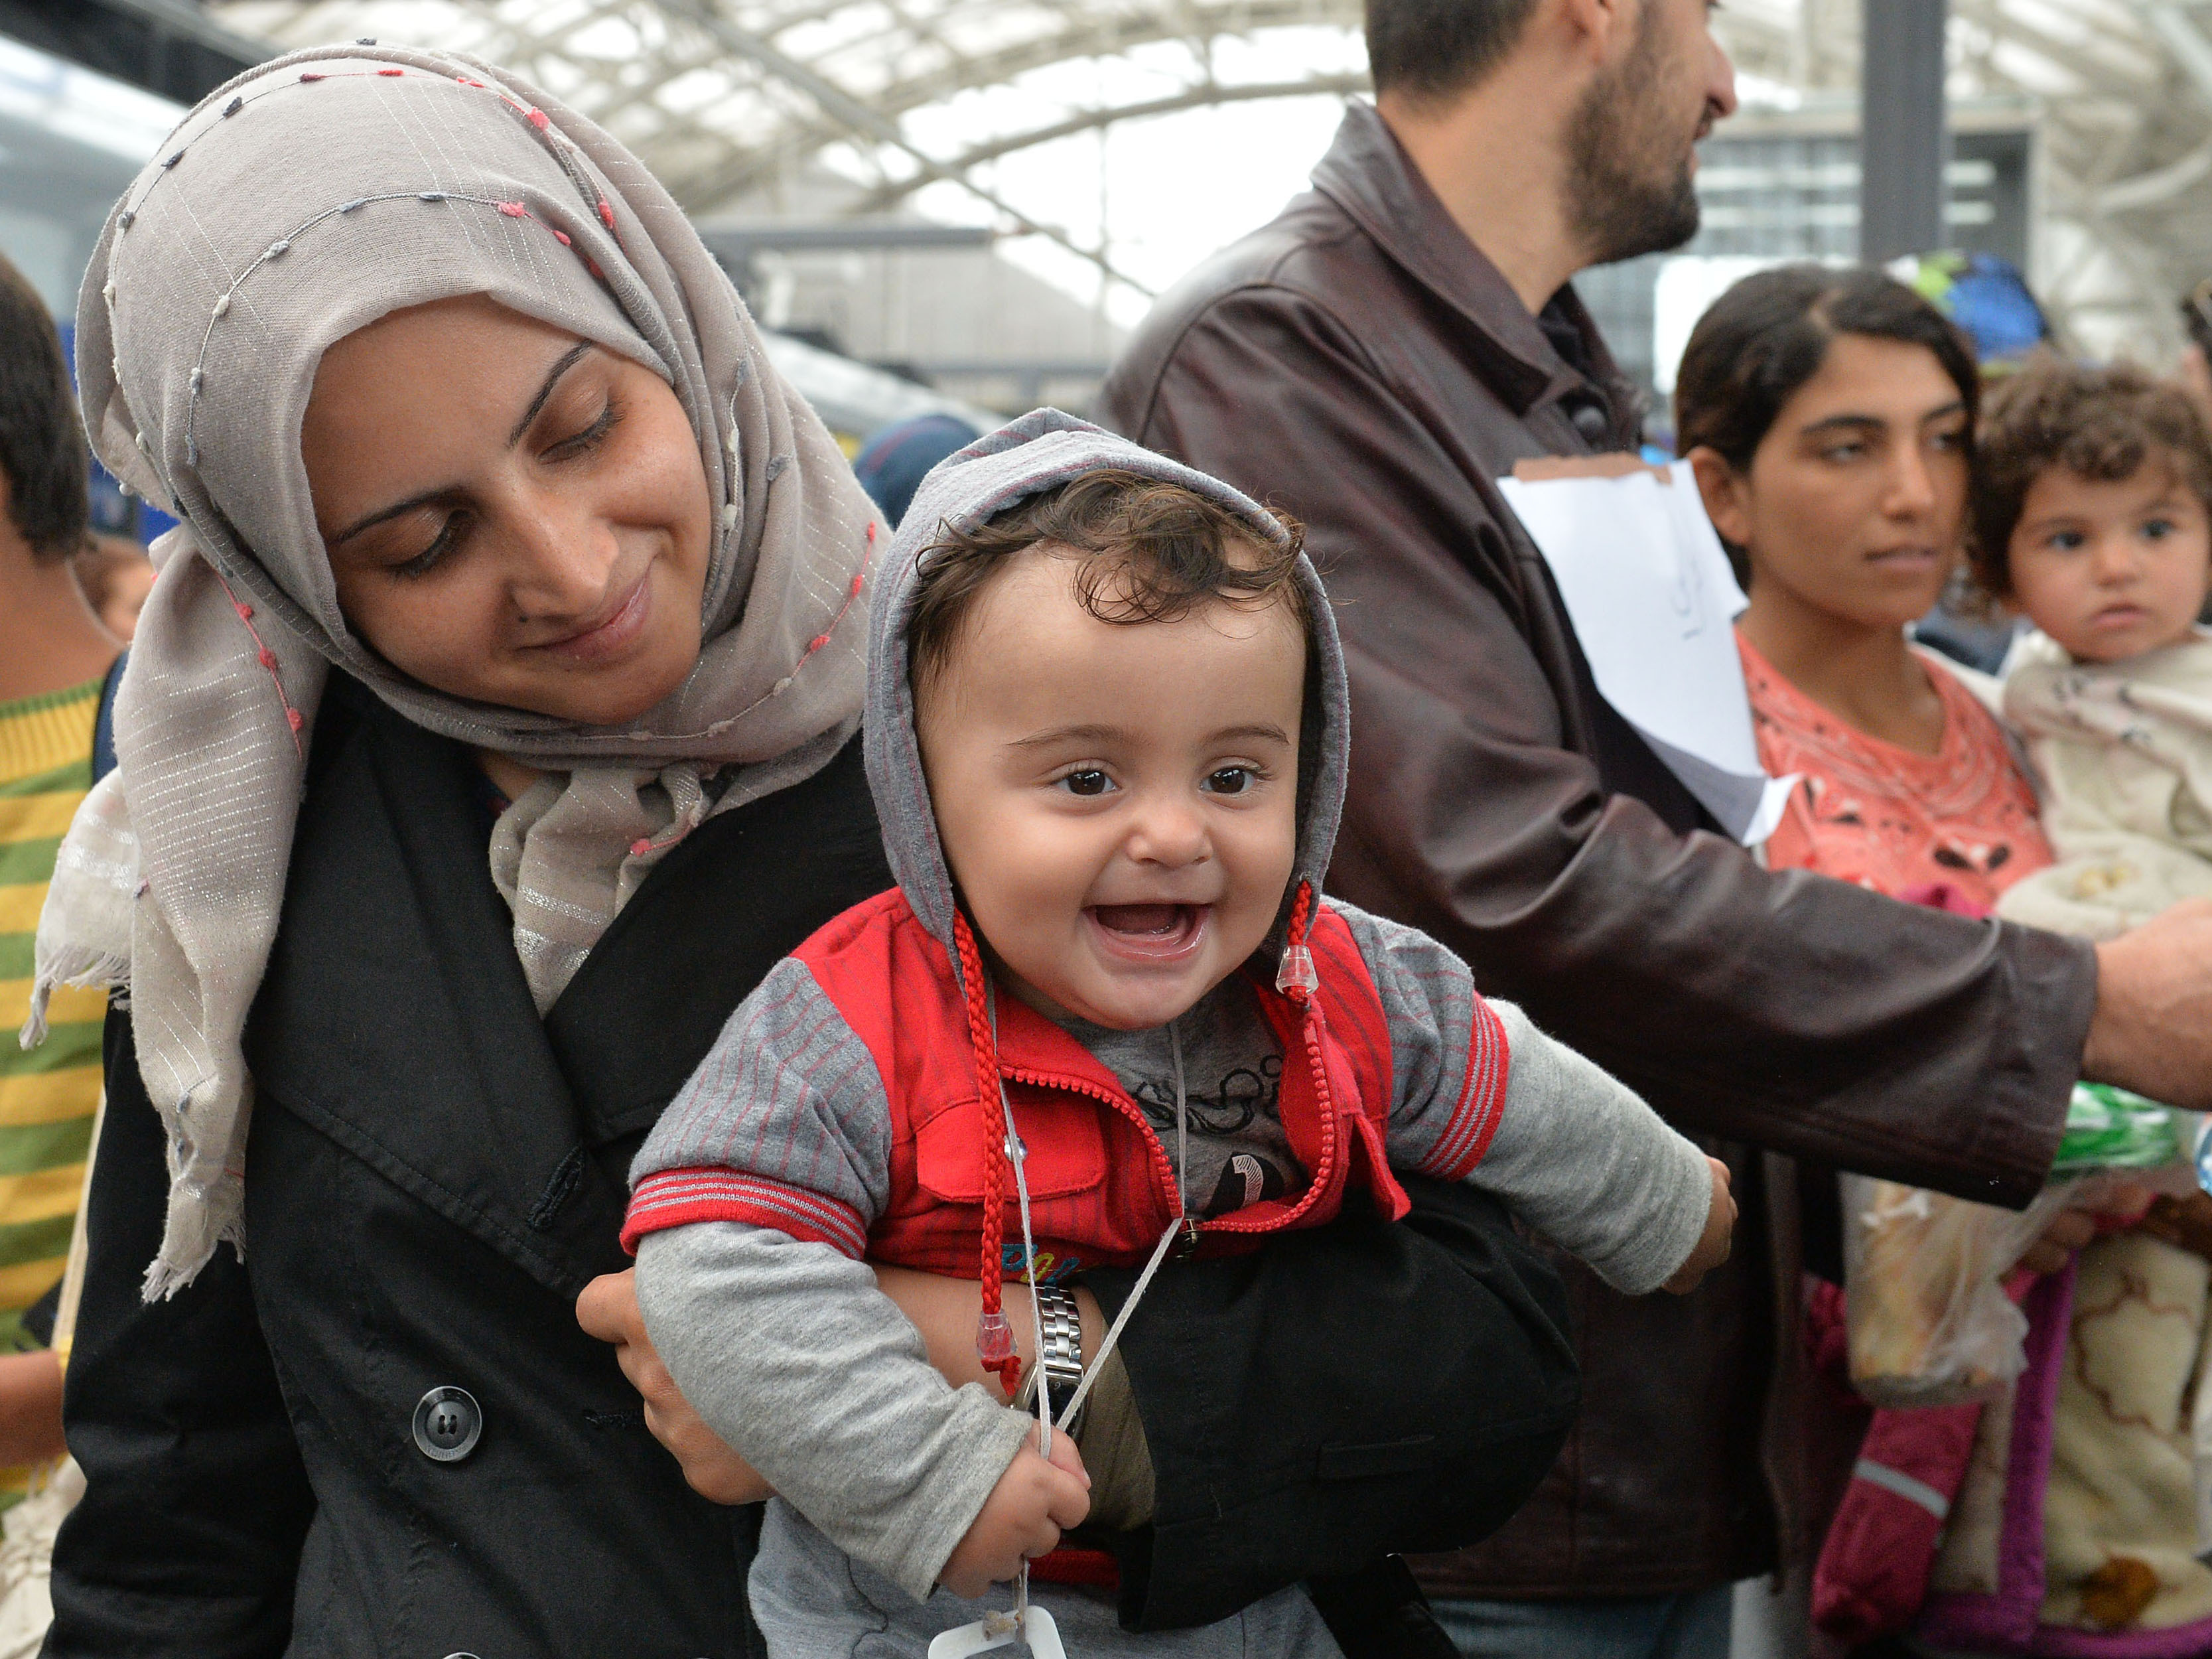 Migrants Arrive In Austria, Germany After Being Bused To Border